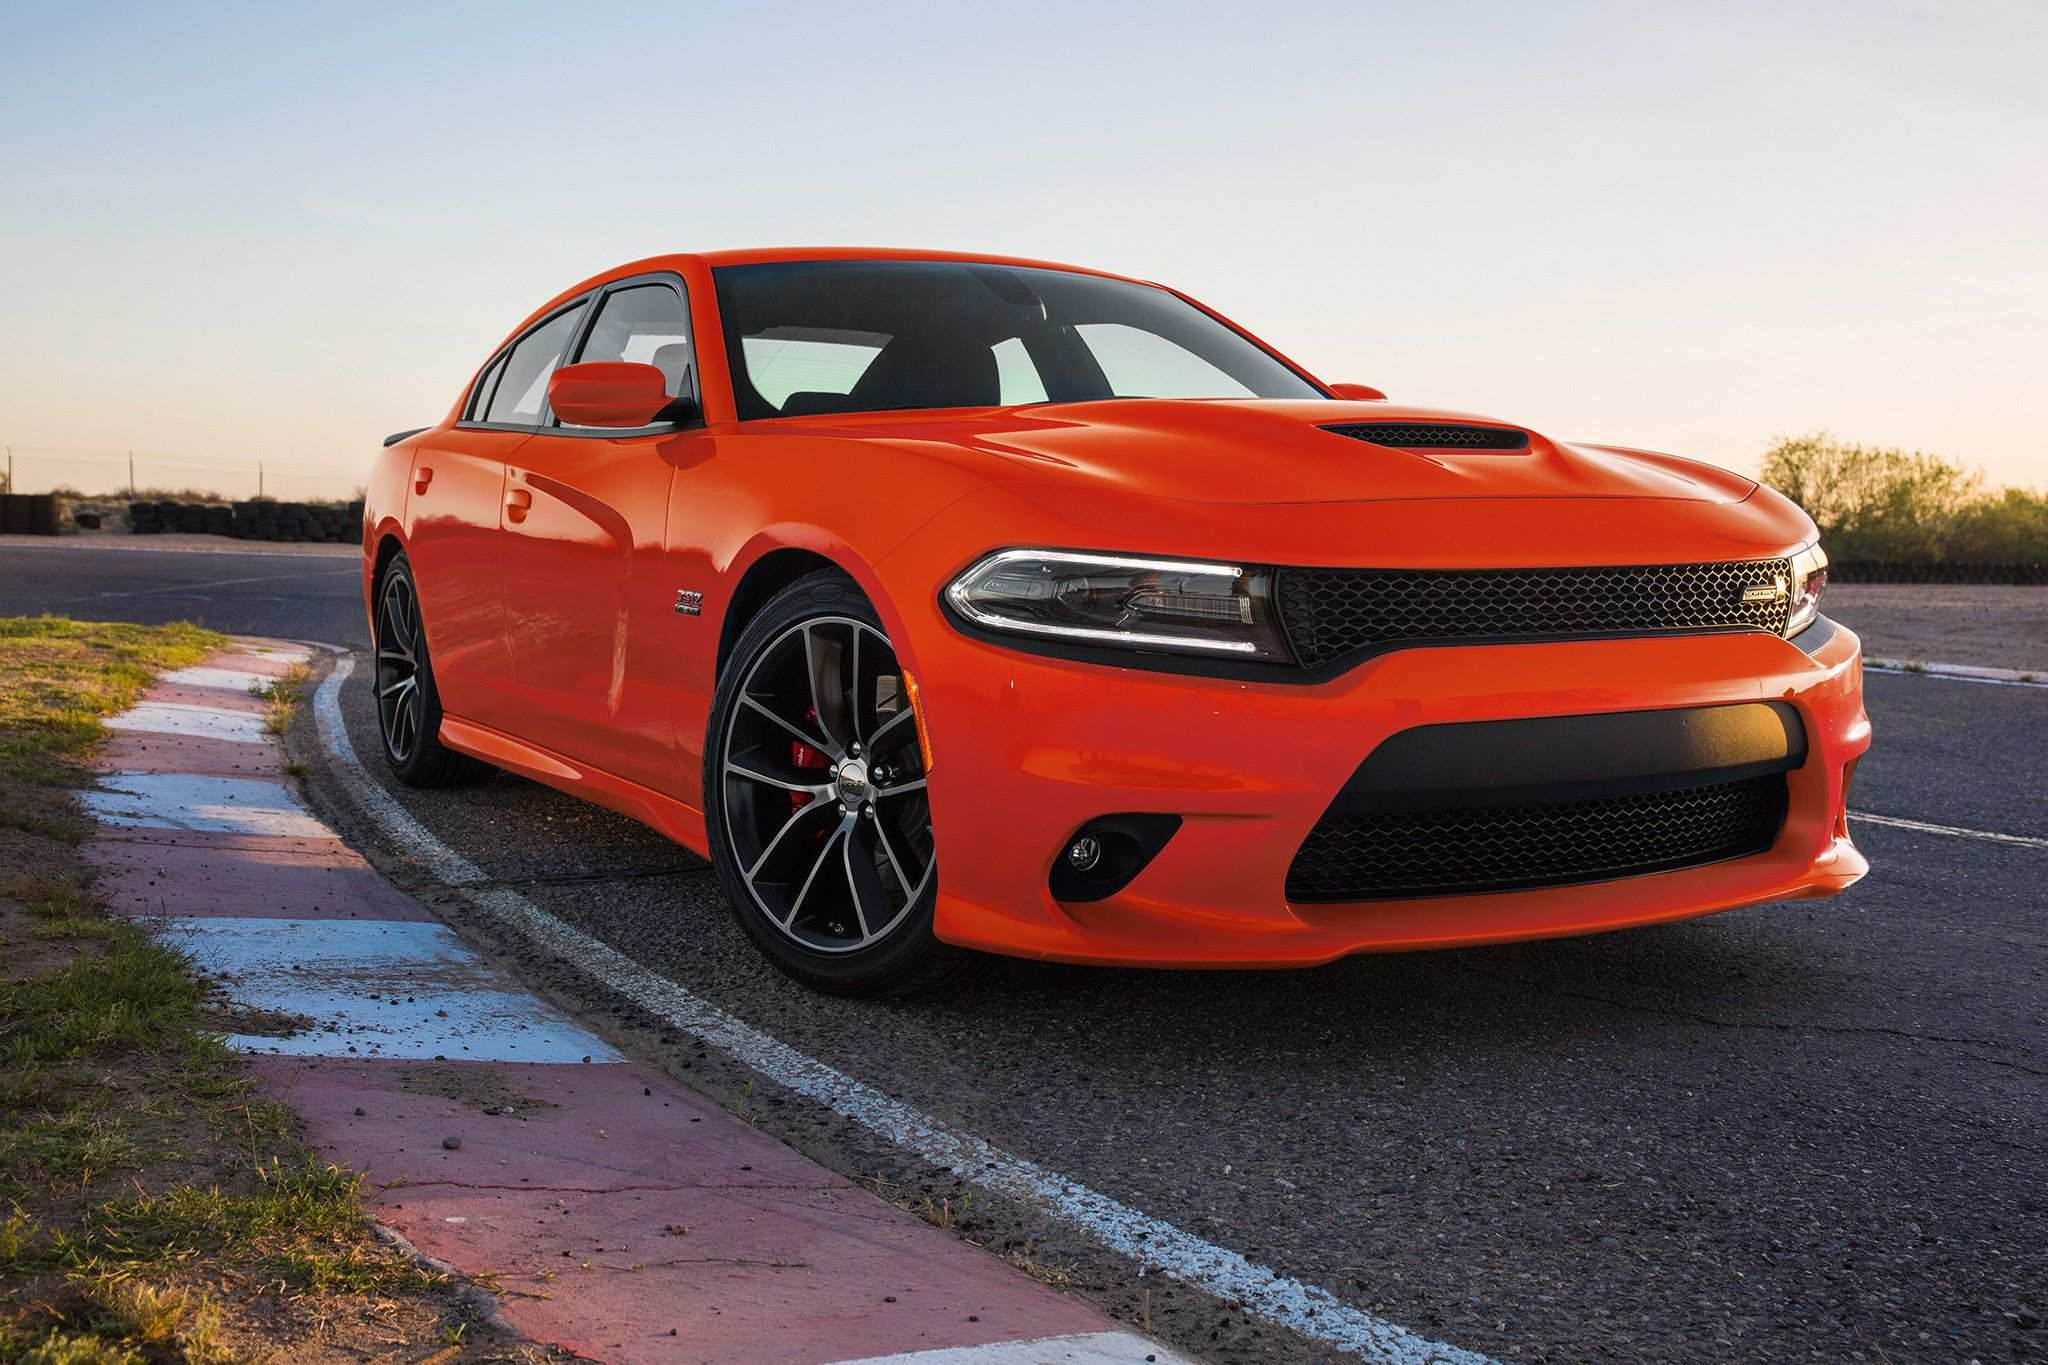 51 Best Review 2020 Dodge Charger Engine Exterior with 2020 Dodge Charger Engine